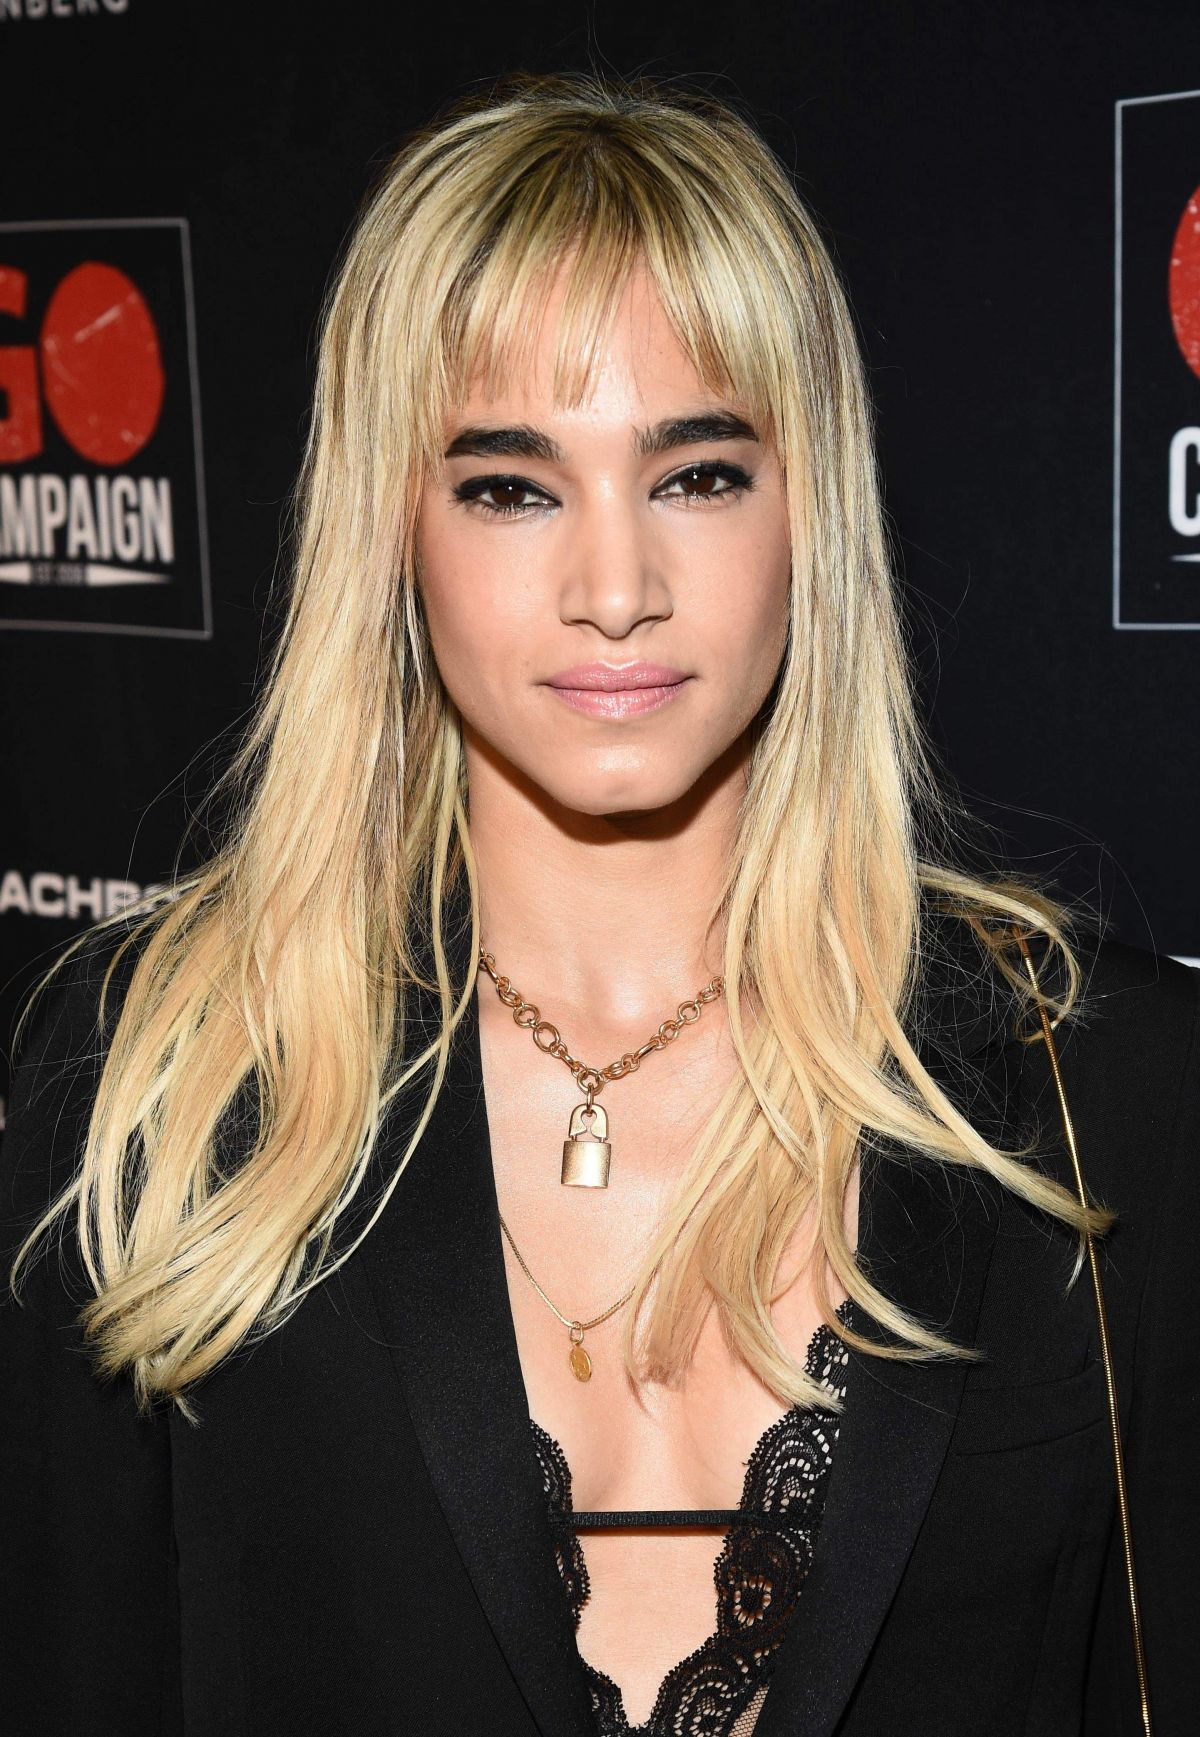 Pussy 2019 Sofia Boutella naked photo 2017